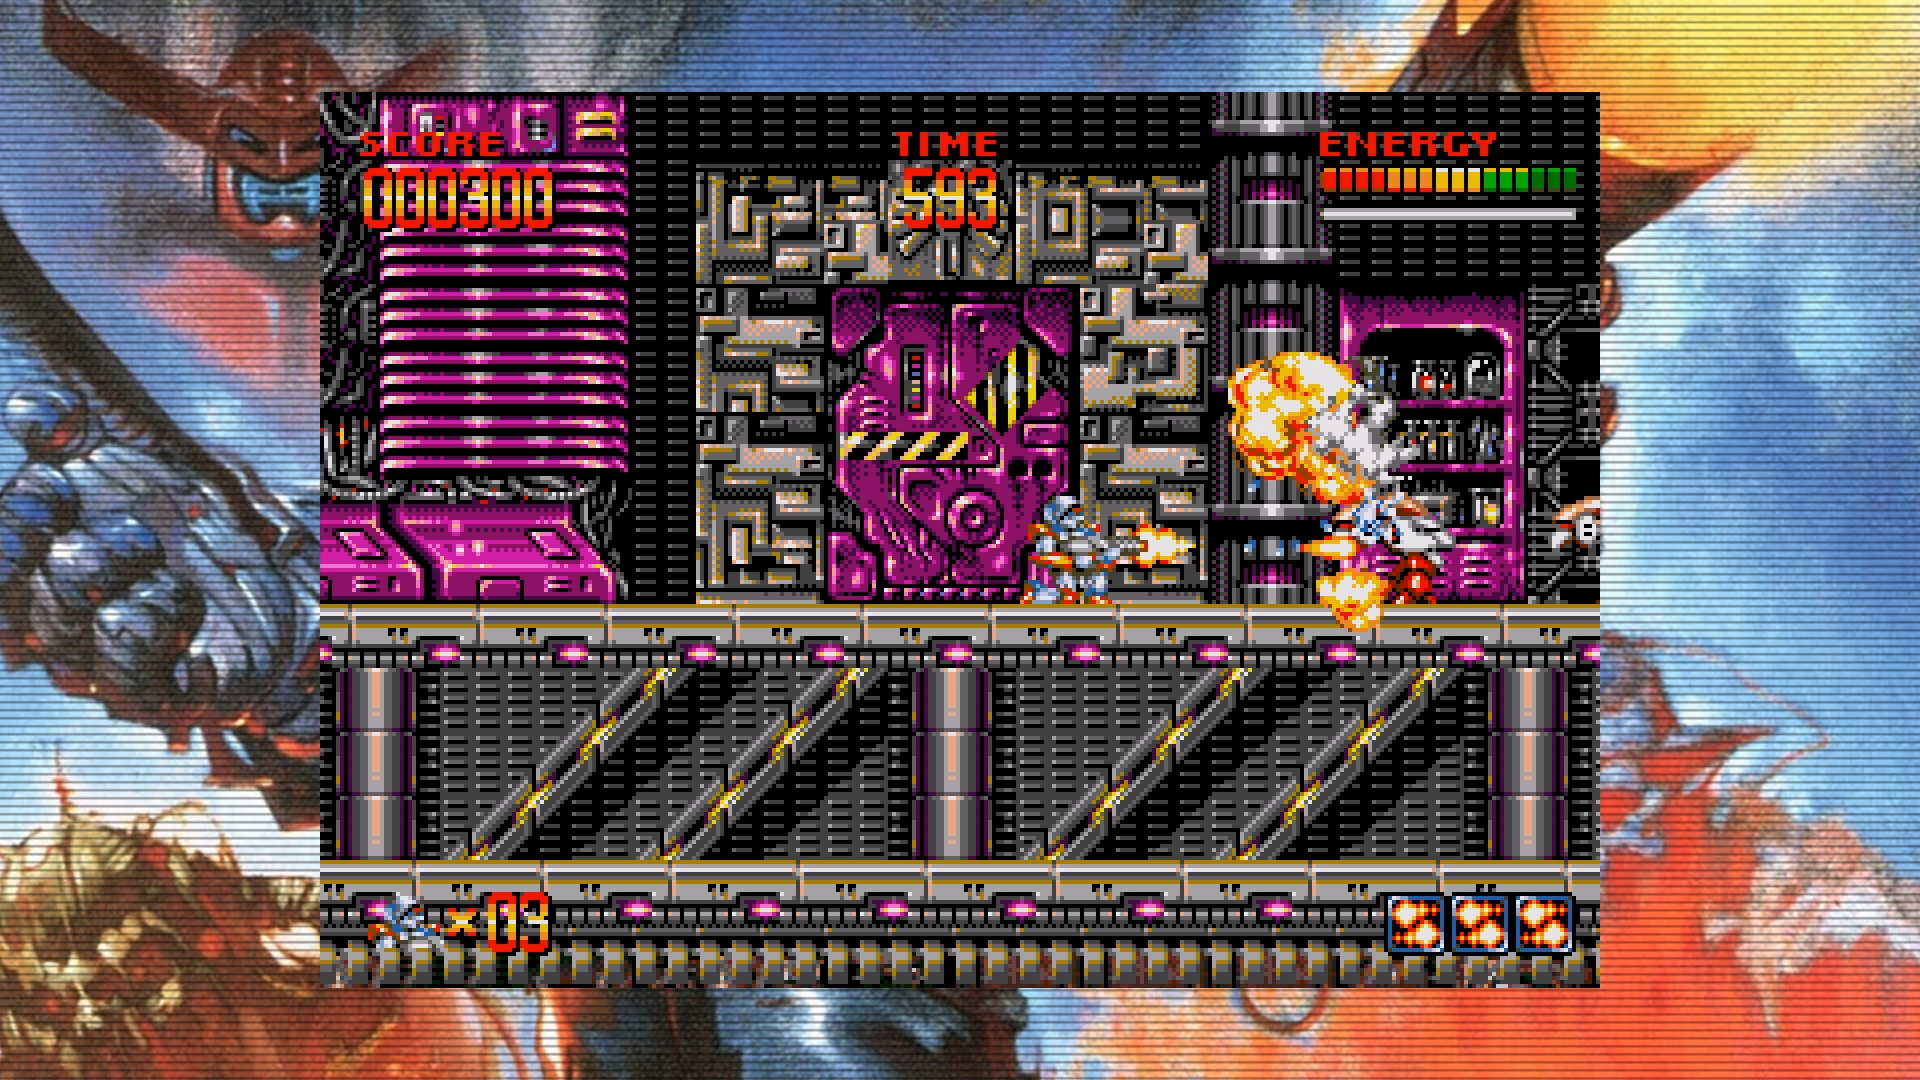 A screenshot from Turrican Flashback on Nintendo Switch